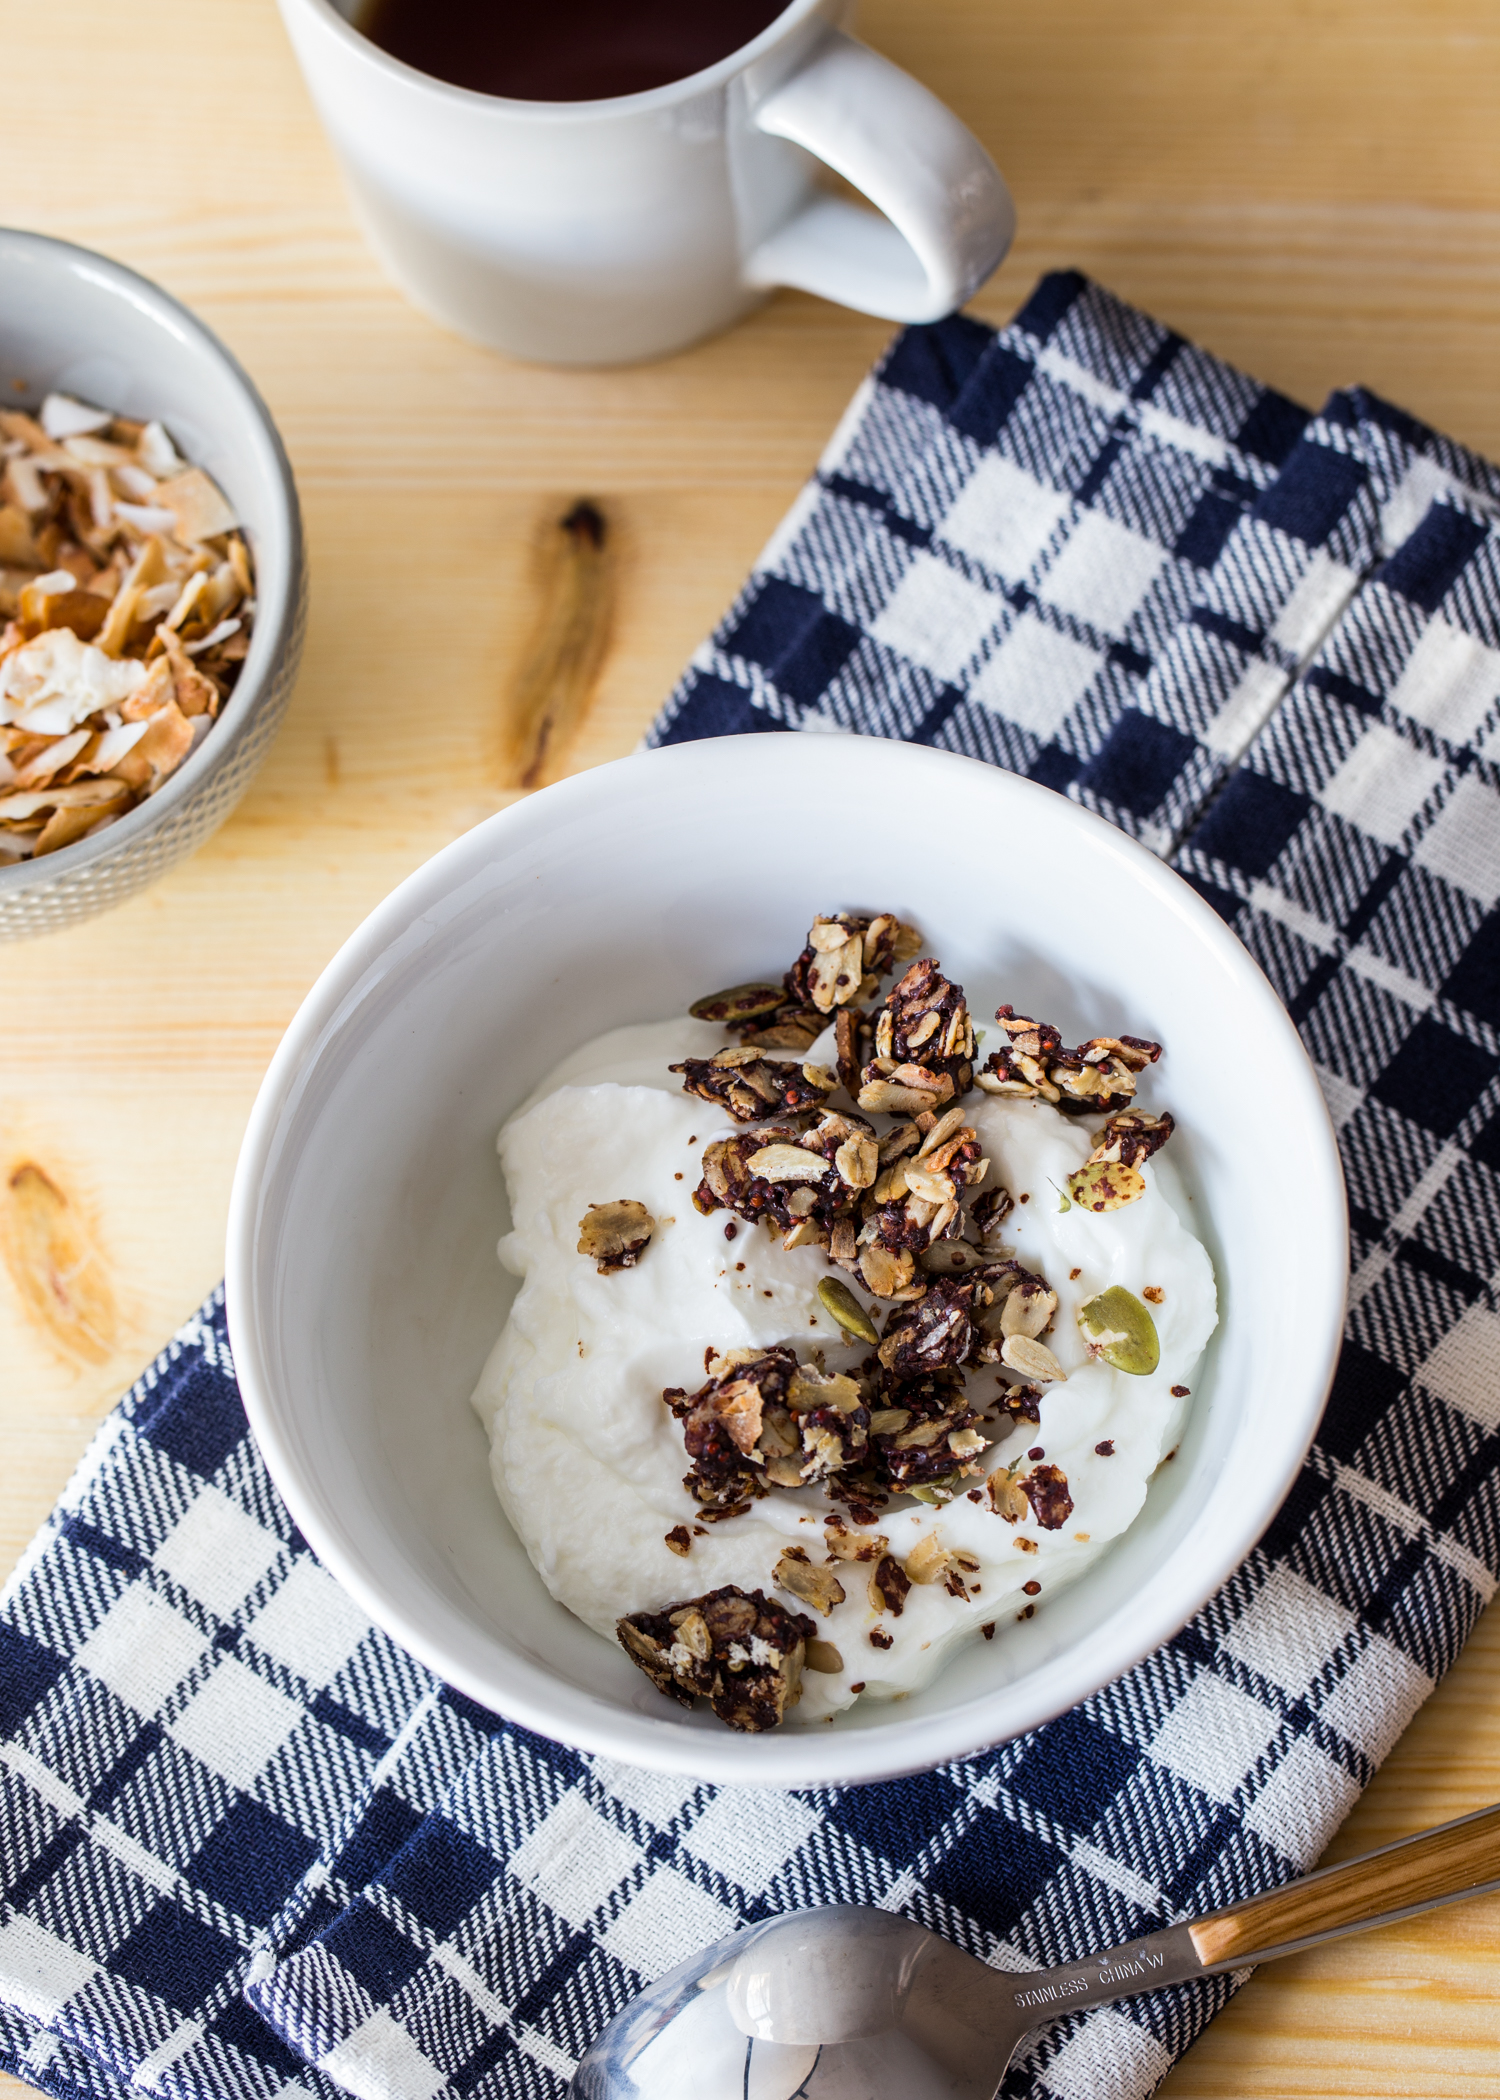 Chocolate Coconut Granola is a great, crunchy topping for Greek yogurt.